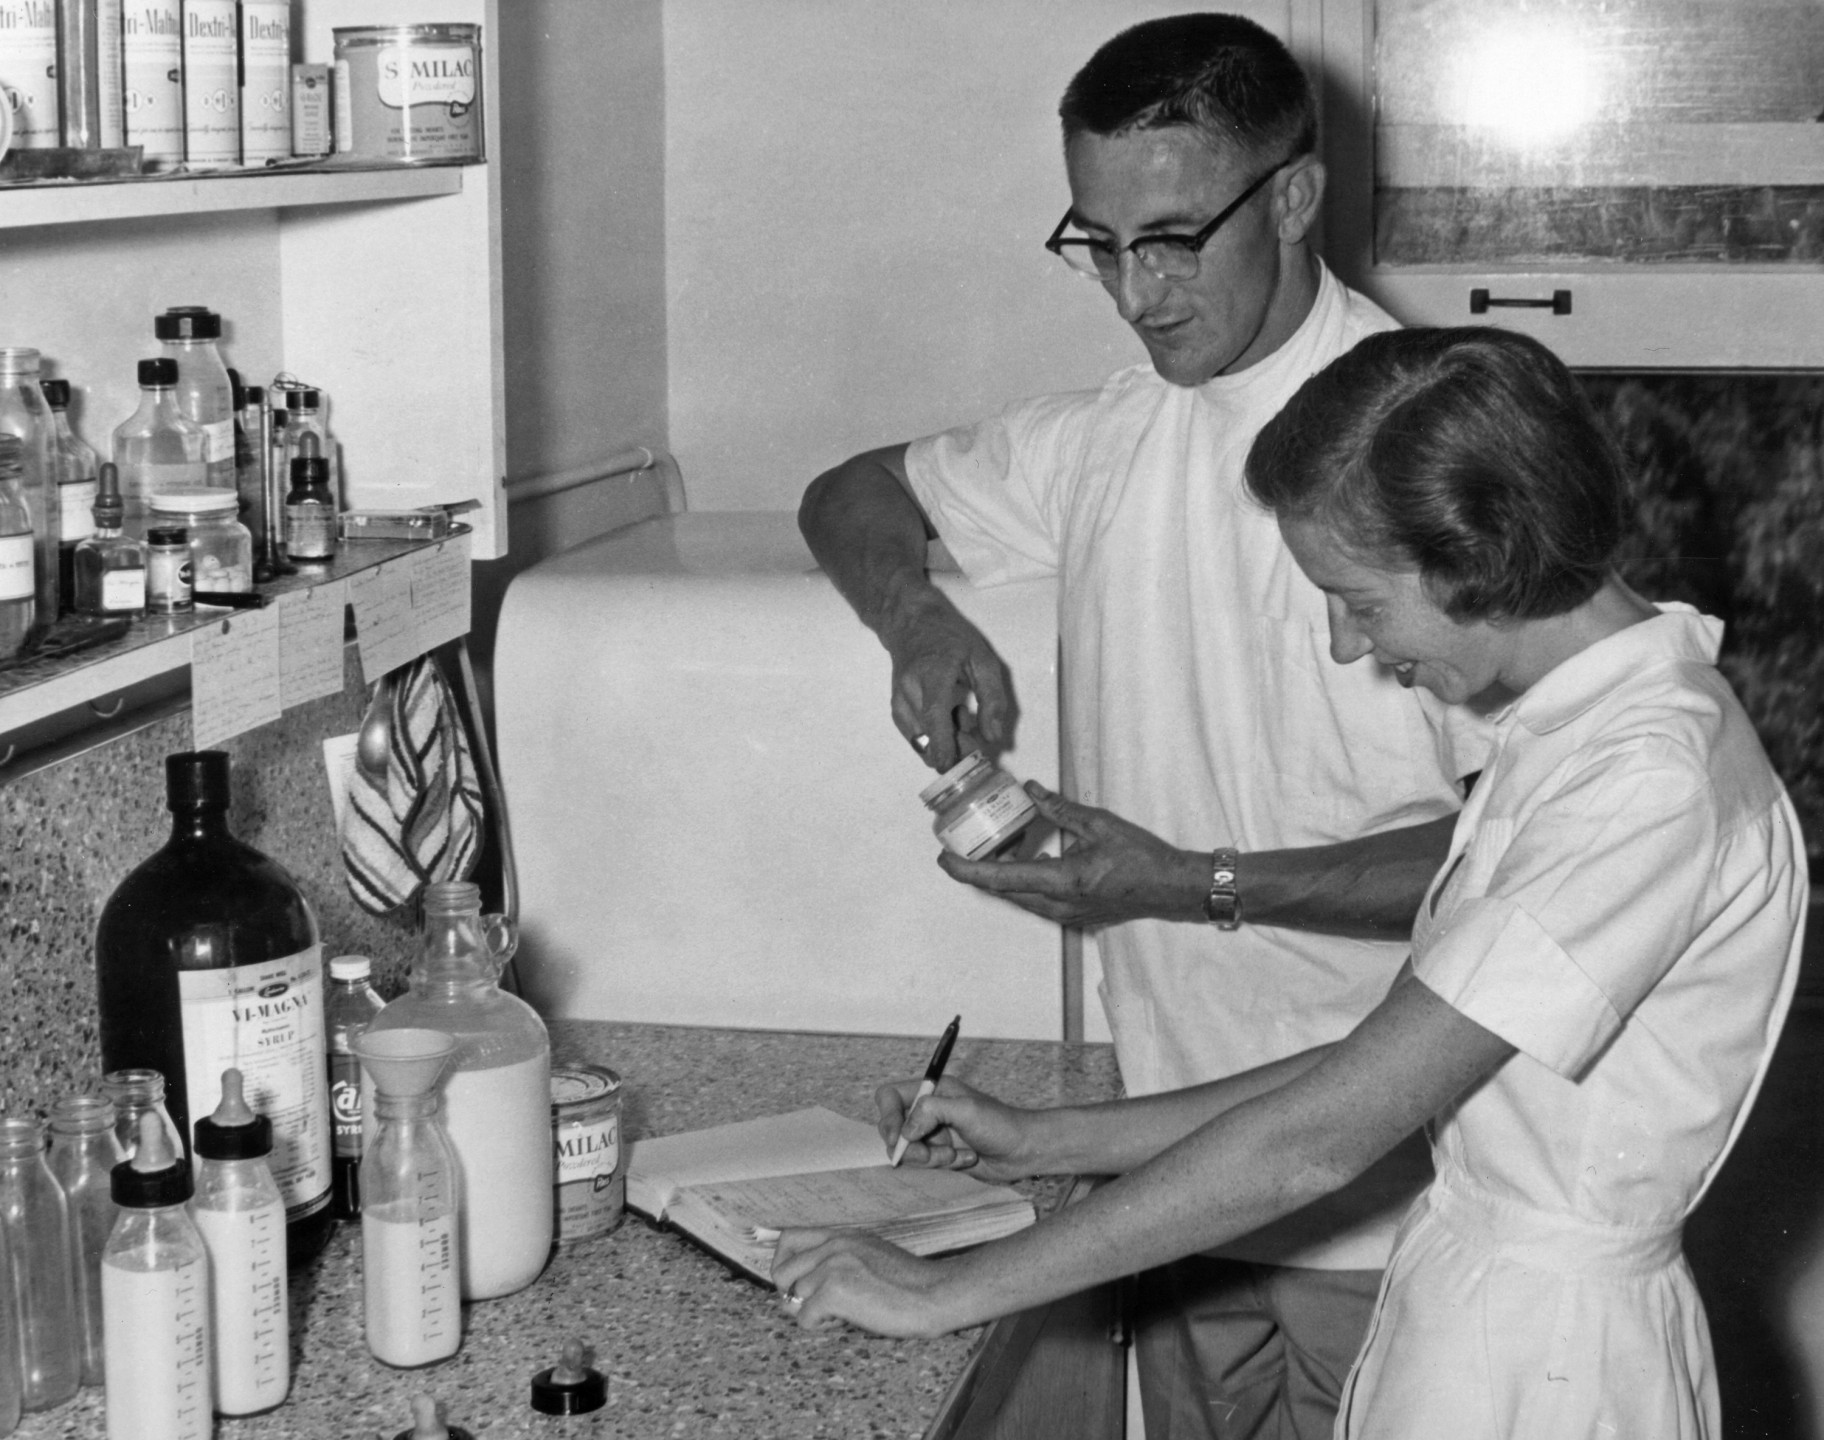 In 1956, the Zoo hired a new veterinarian, Dr. Werner Heuschele, who would be instrumental in establishing innovative veterinary procedures and care methods as exotic veterinary medicine advanced in the 1950s and 1960s. One was participating in the testing and use of the first dart guns invented to deliver anesthetics from a distance. Dr. Heuschele would also become a familiar face who would return to the Zoological Society later to head up conservation research efforts. Here (in 1958), he reviews records with Mrs. Barbara